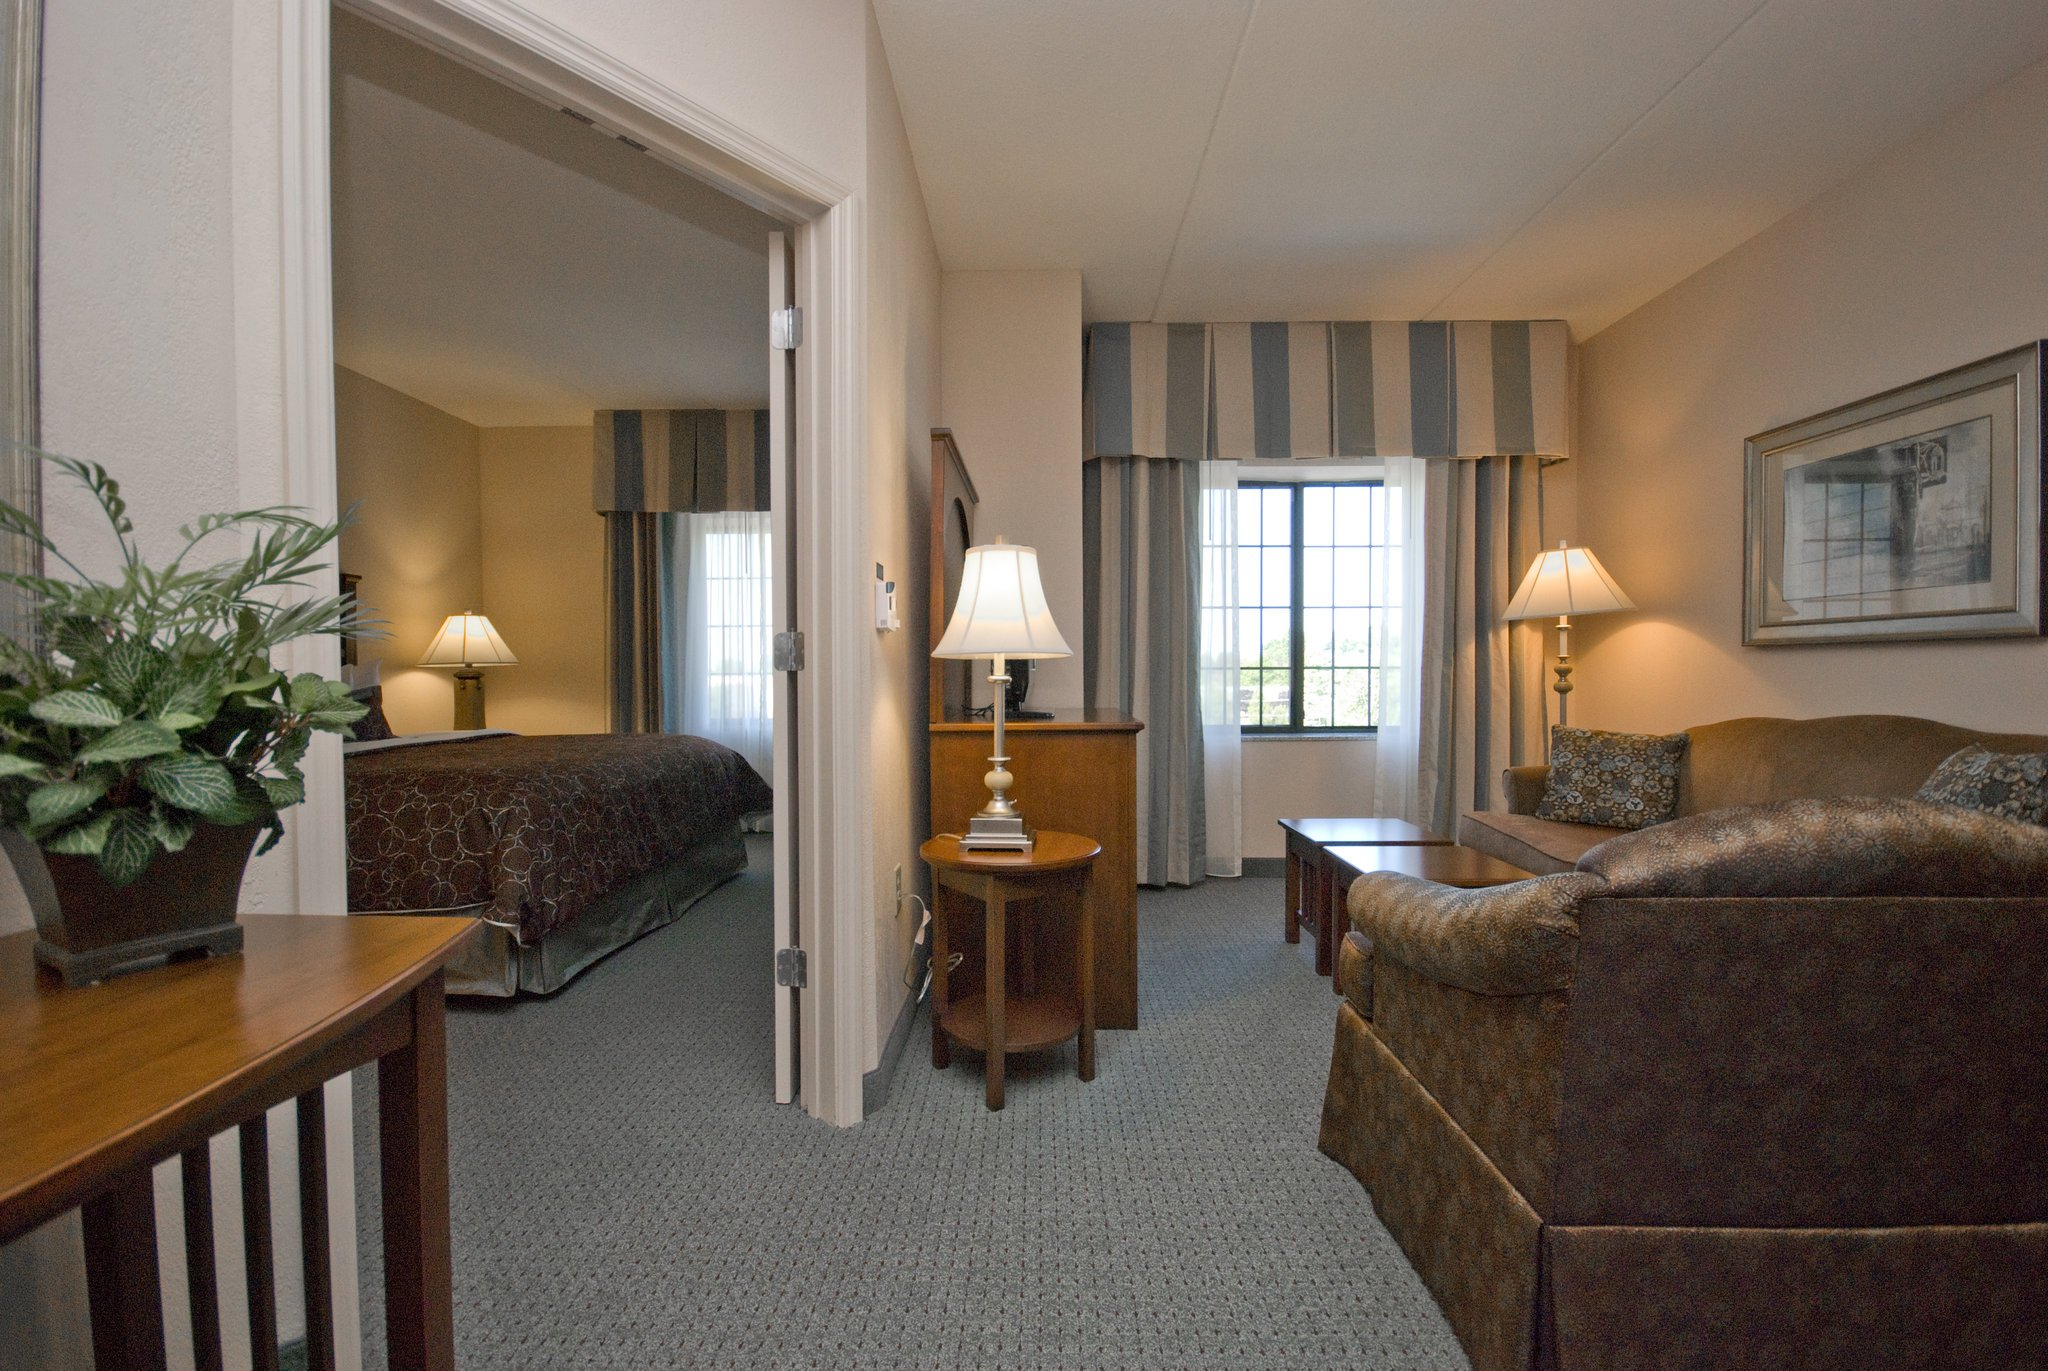 Staybridge Suites Wilmington - Brandywine Valley